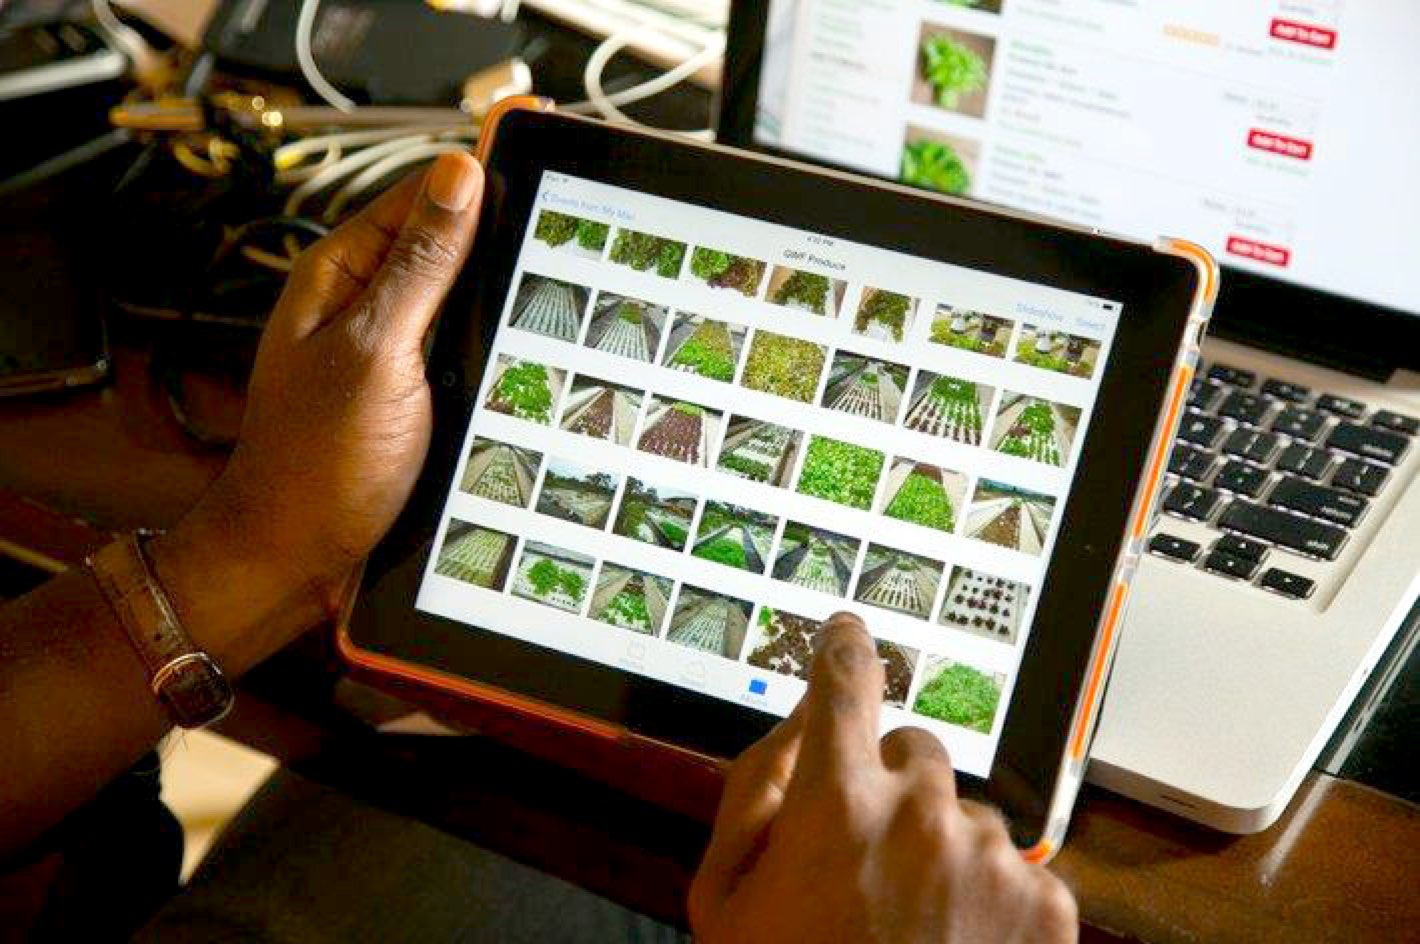 ICTs for agriculture: a must for youth and farmers